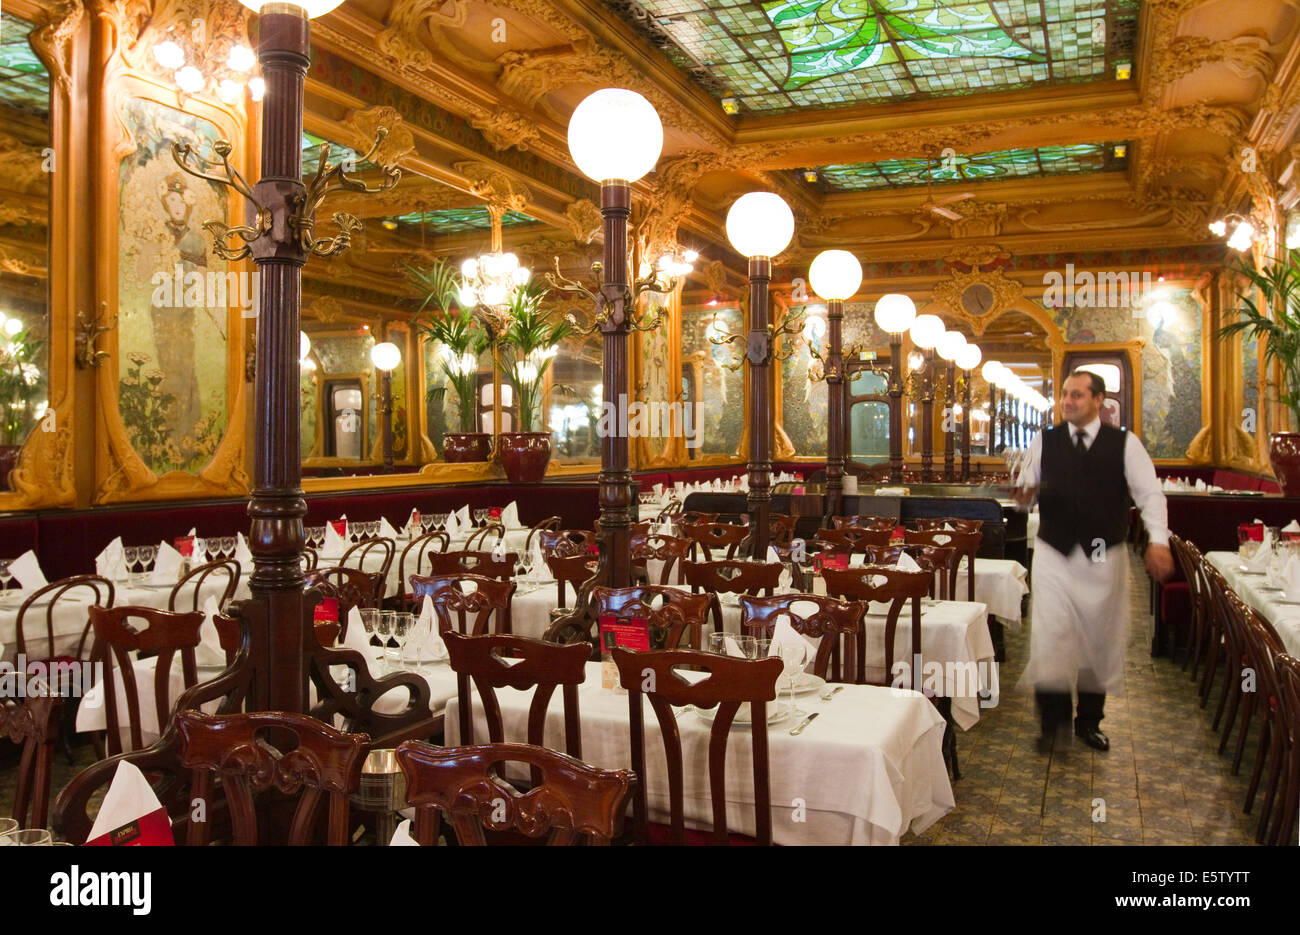 Restaurant Art Nouveau High Resolution Stock Photography And Images Alamy